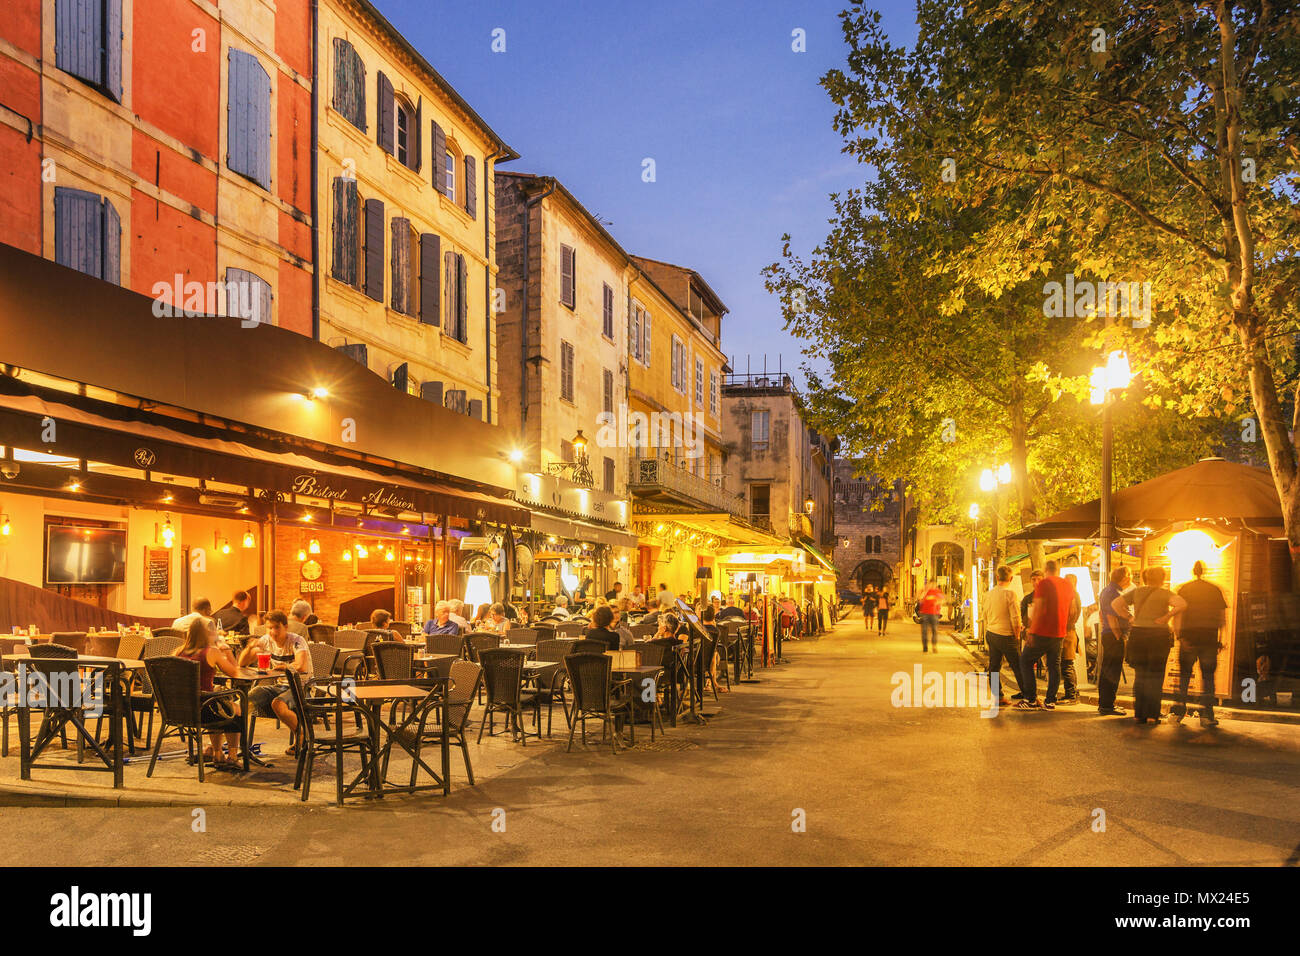 Arles, France - September 4, 2017: Locals and tourists spending time at the Place du Forum with its Cafés and Bistros. - Stock Image